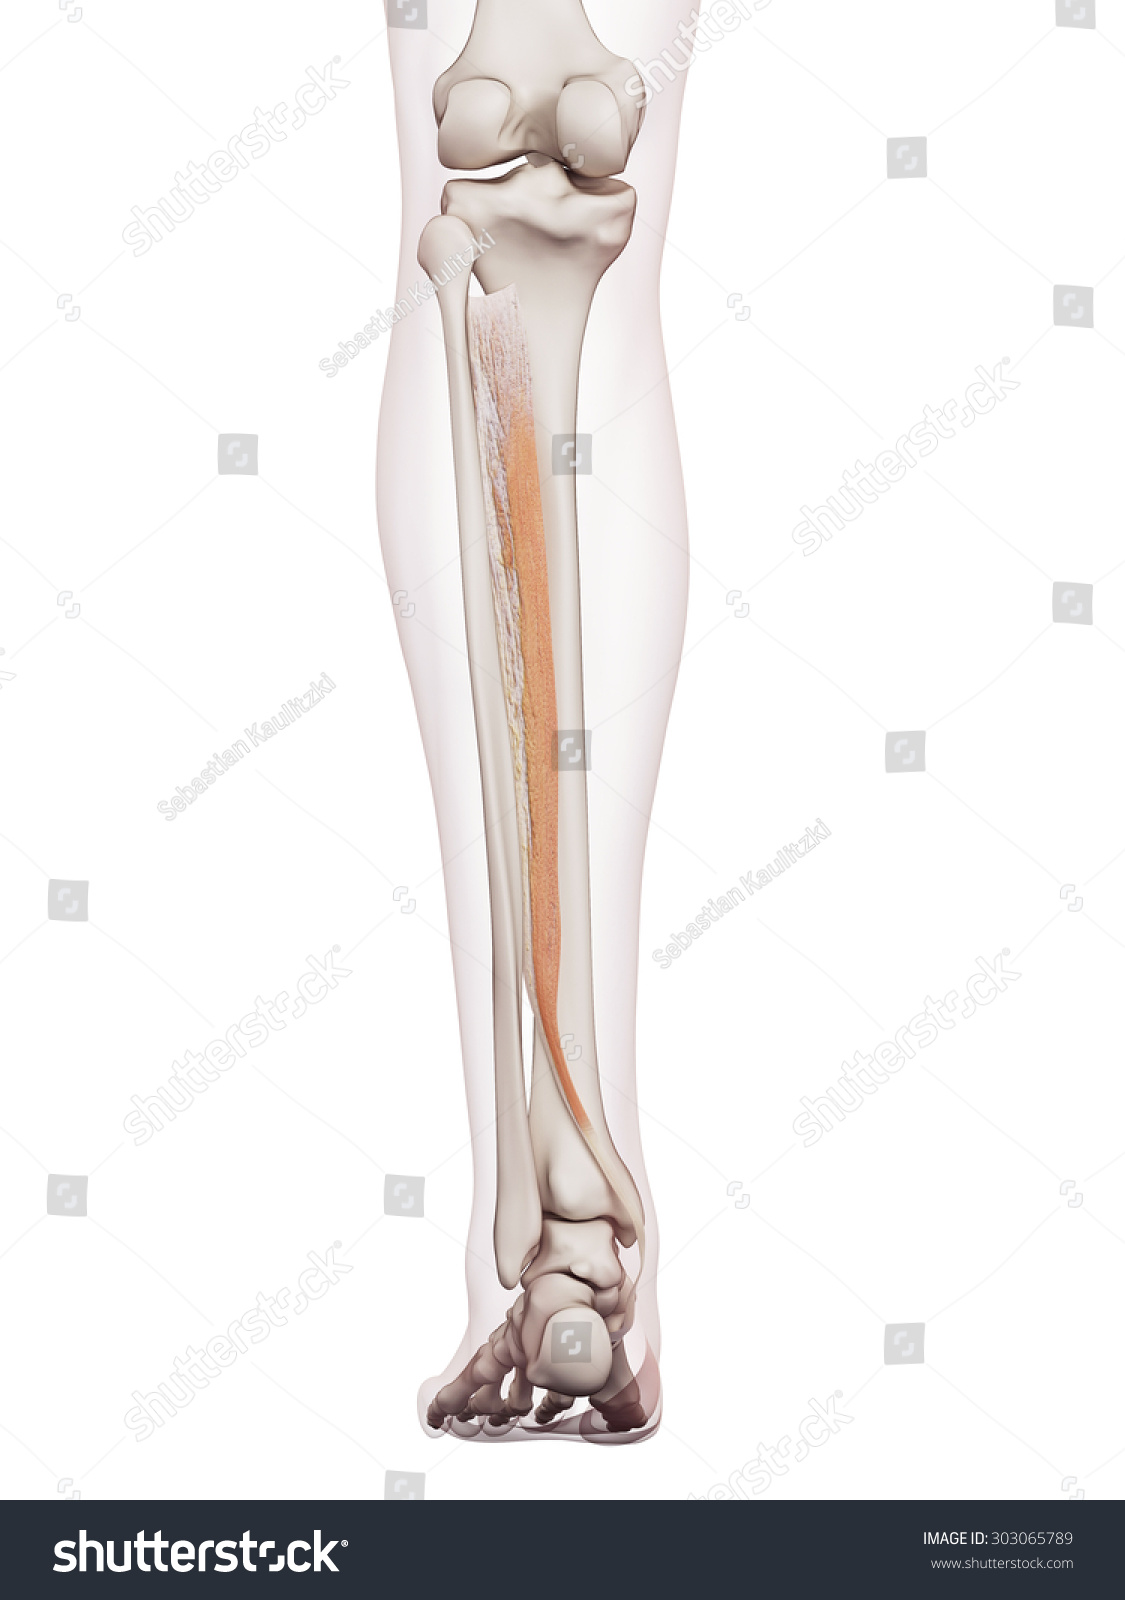 Medically Accurate Muscle Illustration Tibialis Posterior Stock ...